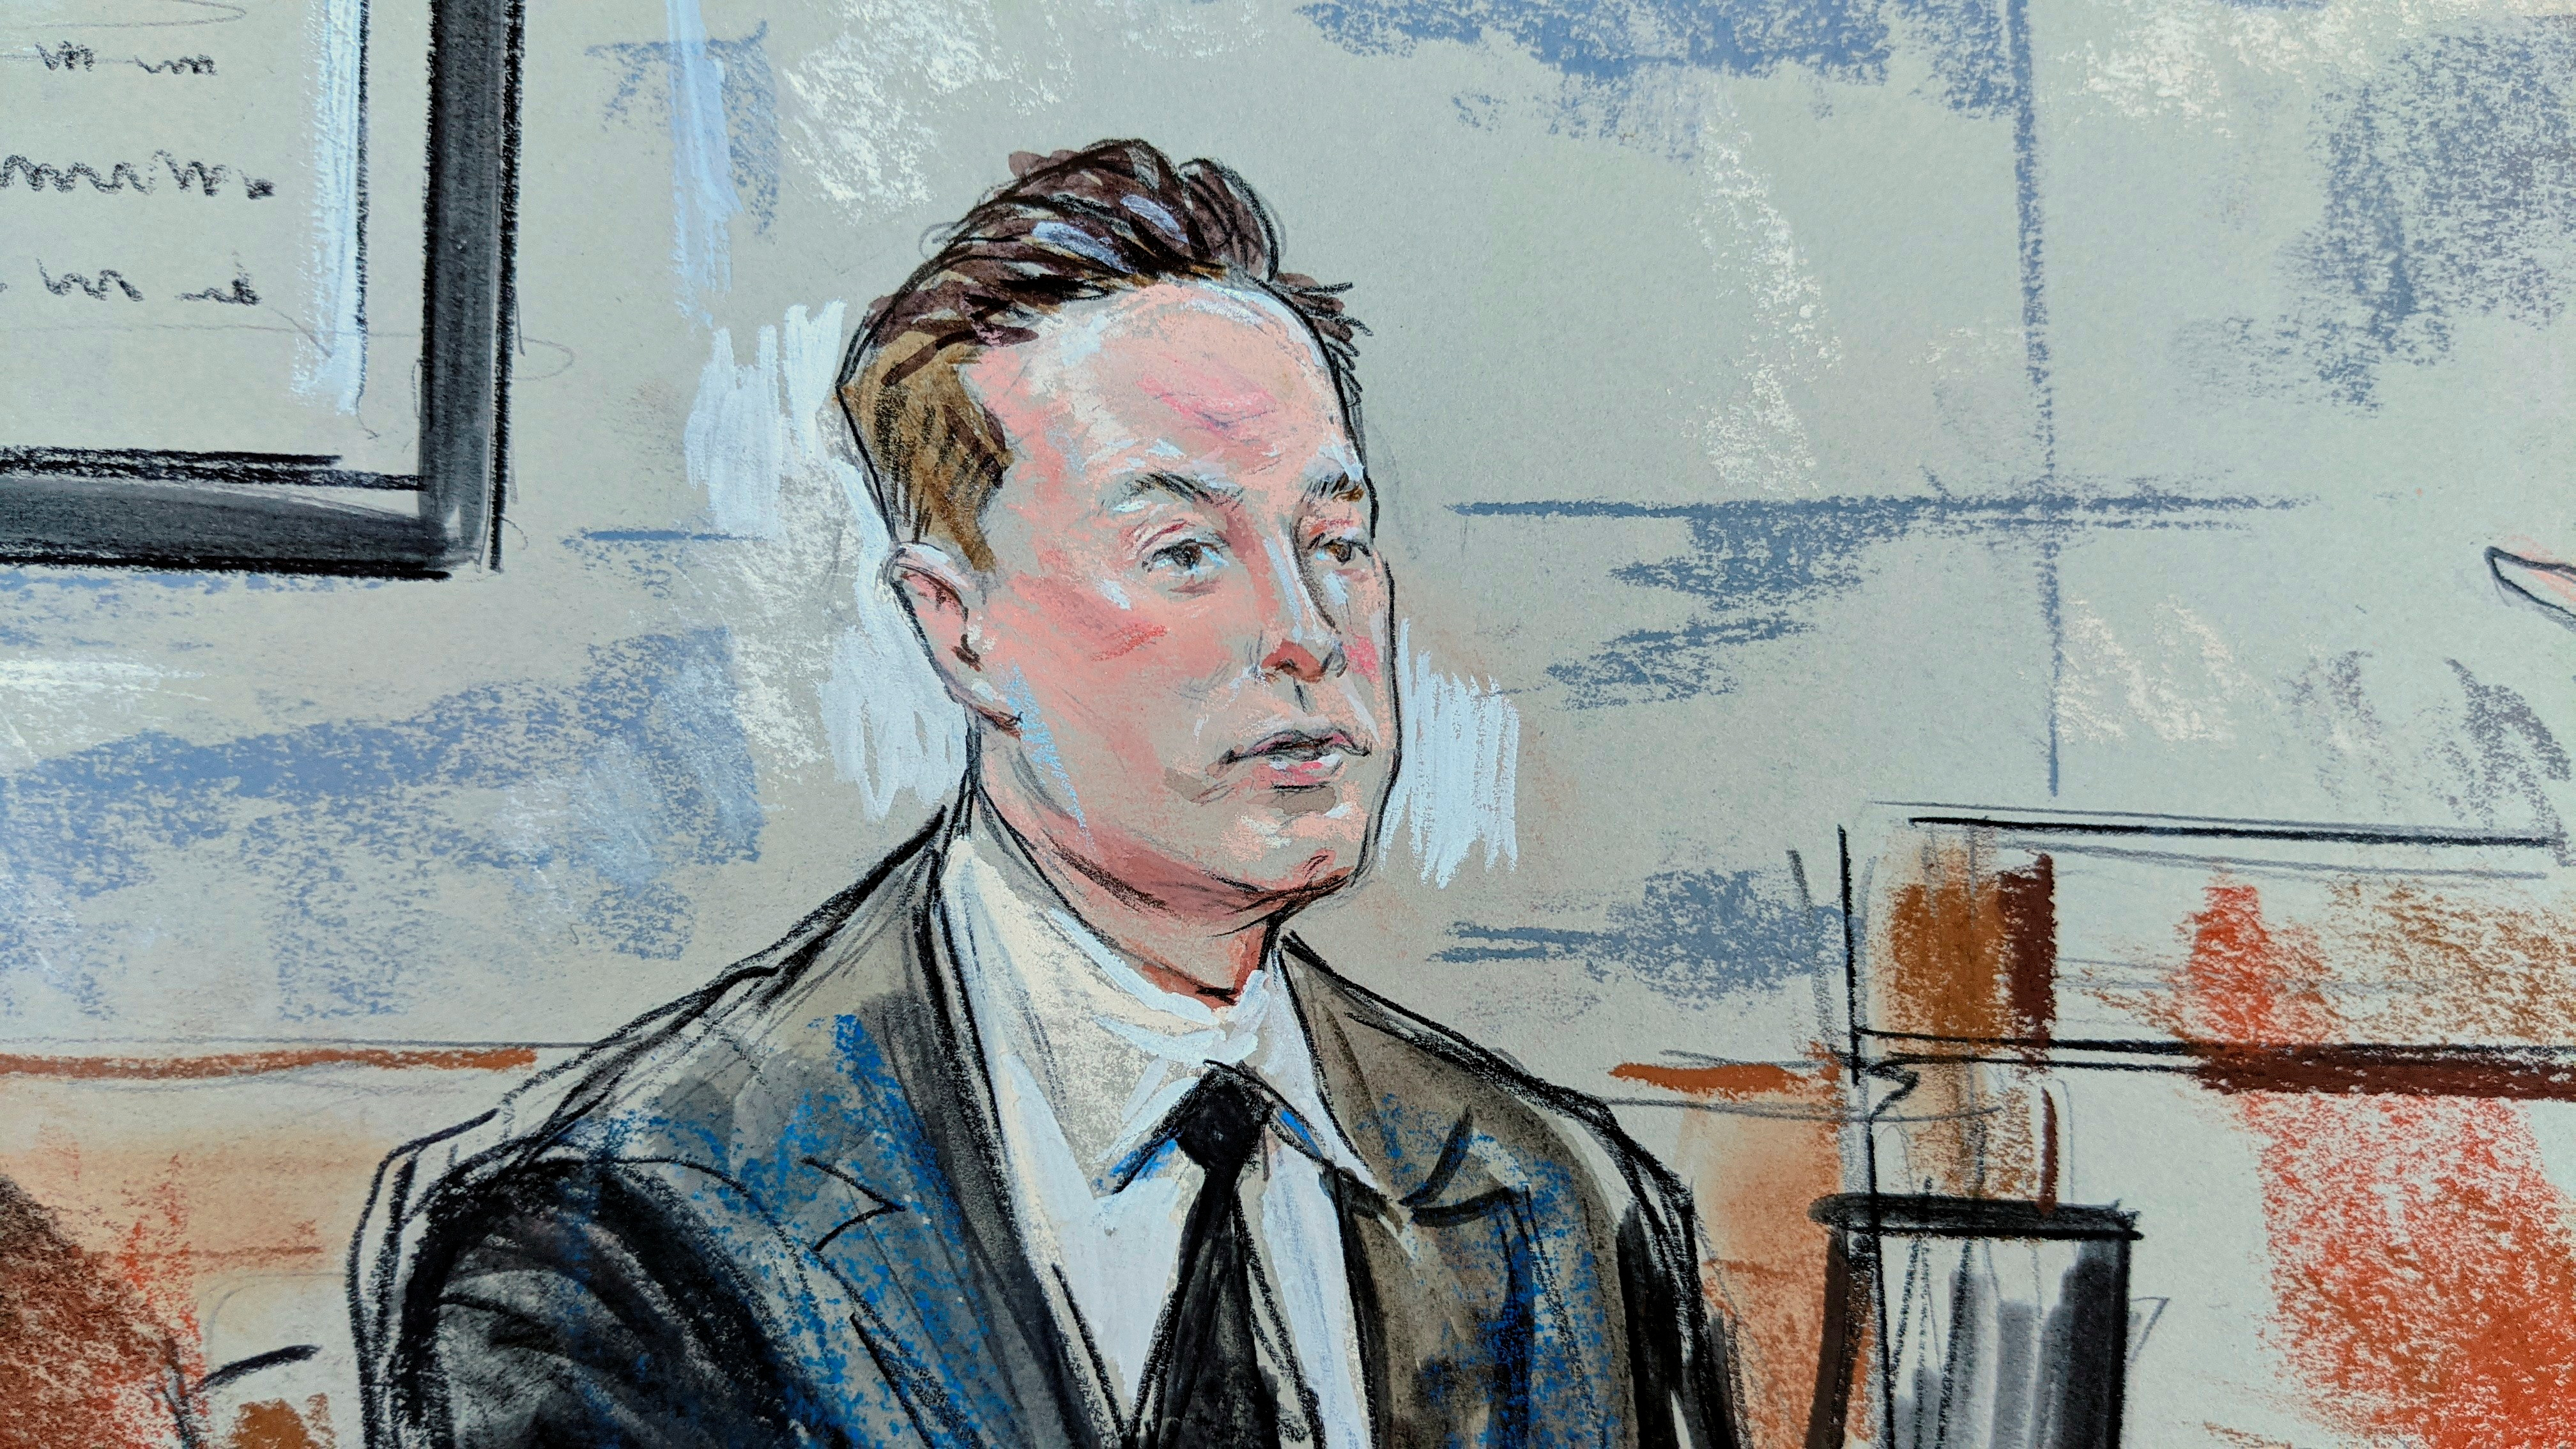 Tesla CEO Elon Musk defends Tesla Inc's 2016 deal for SolarCity at the Williams Justice Center in a case before the Delaware Court of Chancery, in Wilmington, Delaware, U.S., July 12, 2021 in this courtroom sketch. REUTERS/Bill Hennessy